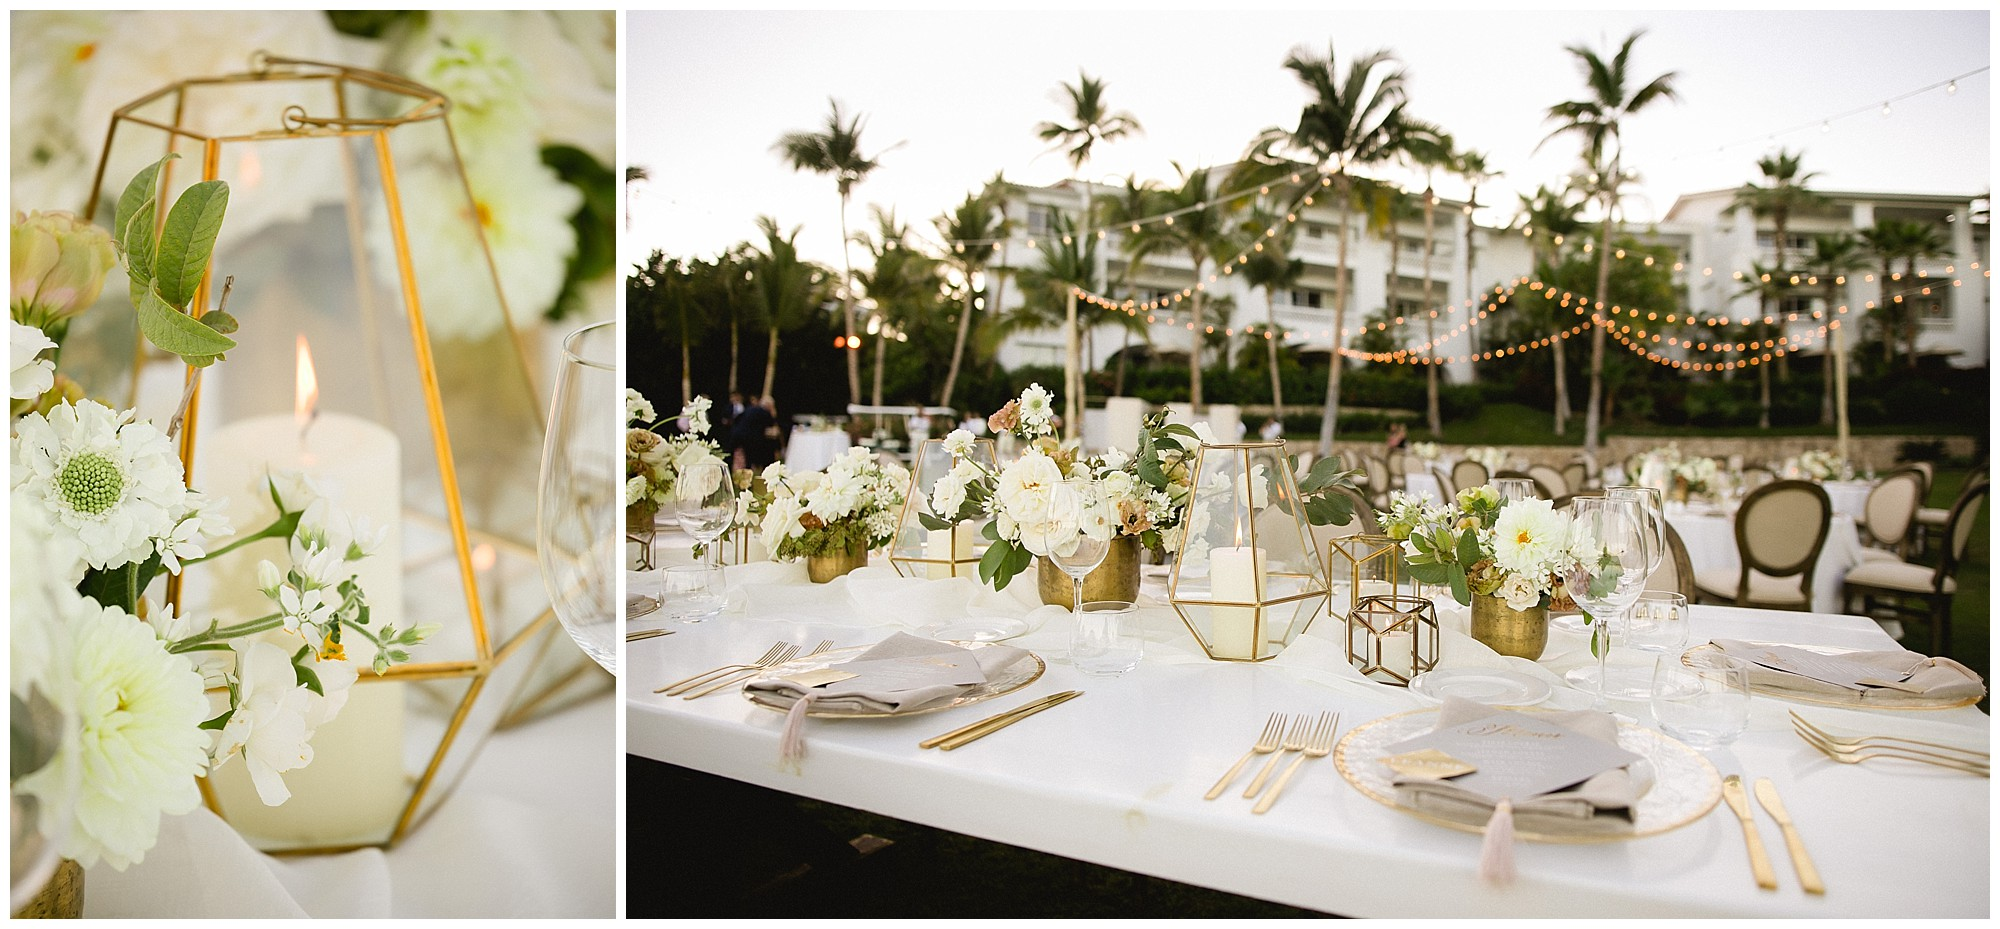 spectacular table settings at One&Only Palmilla wedding